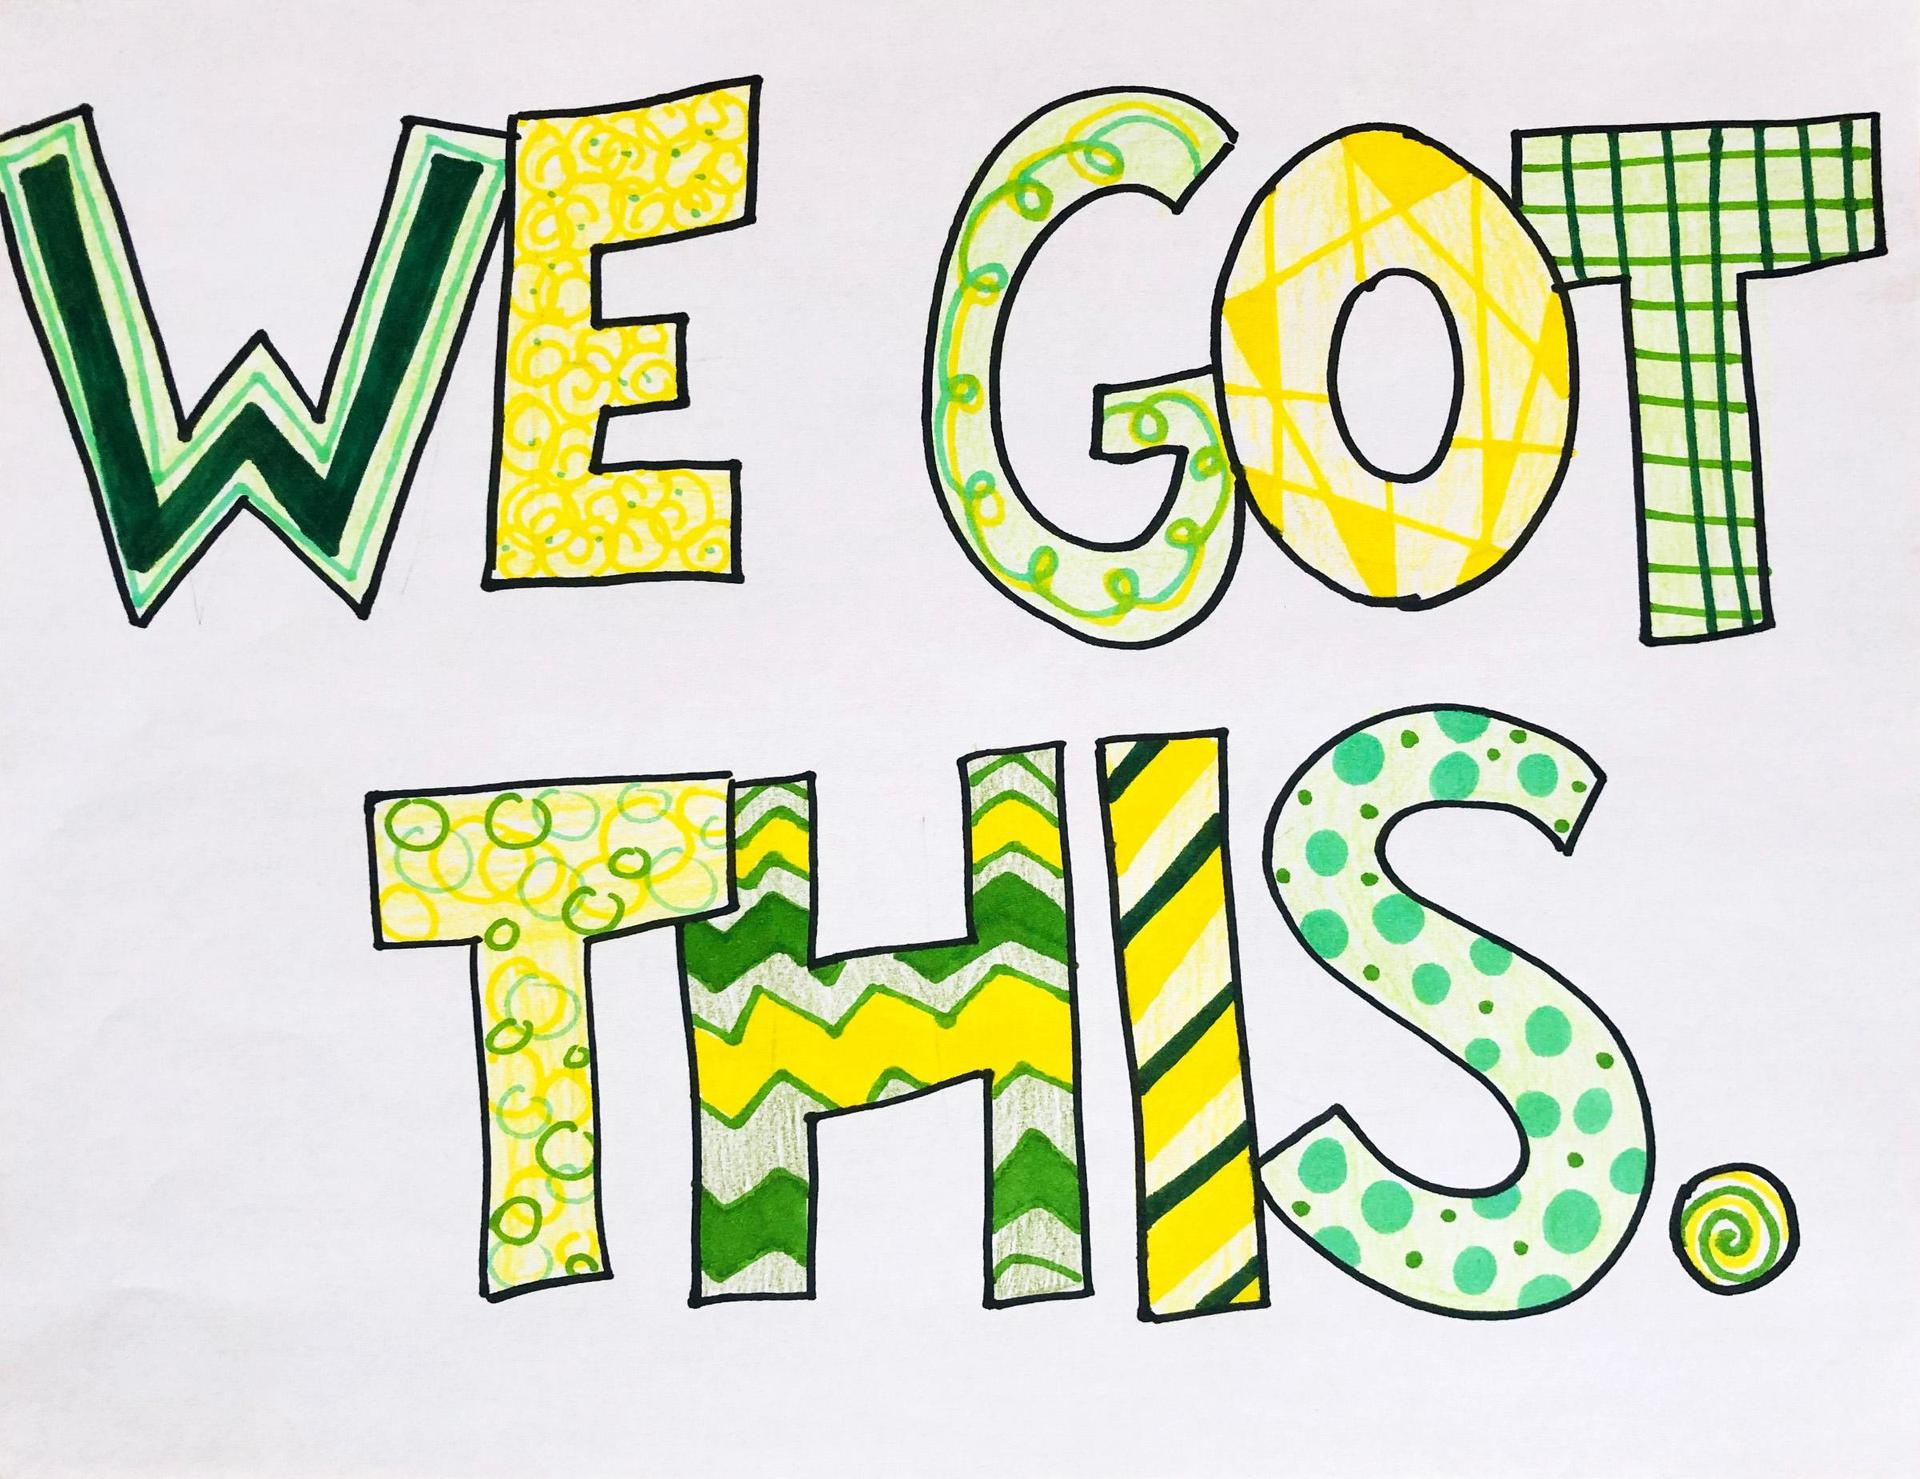 The words 'we got this' filled in with various shapes, designs, and colors